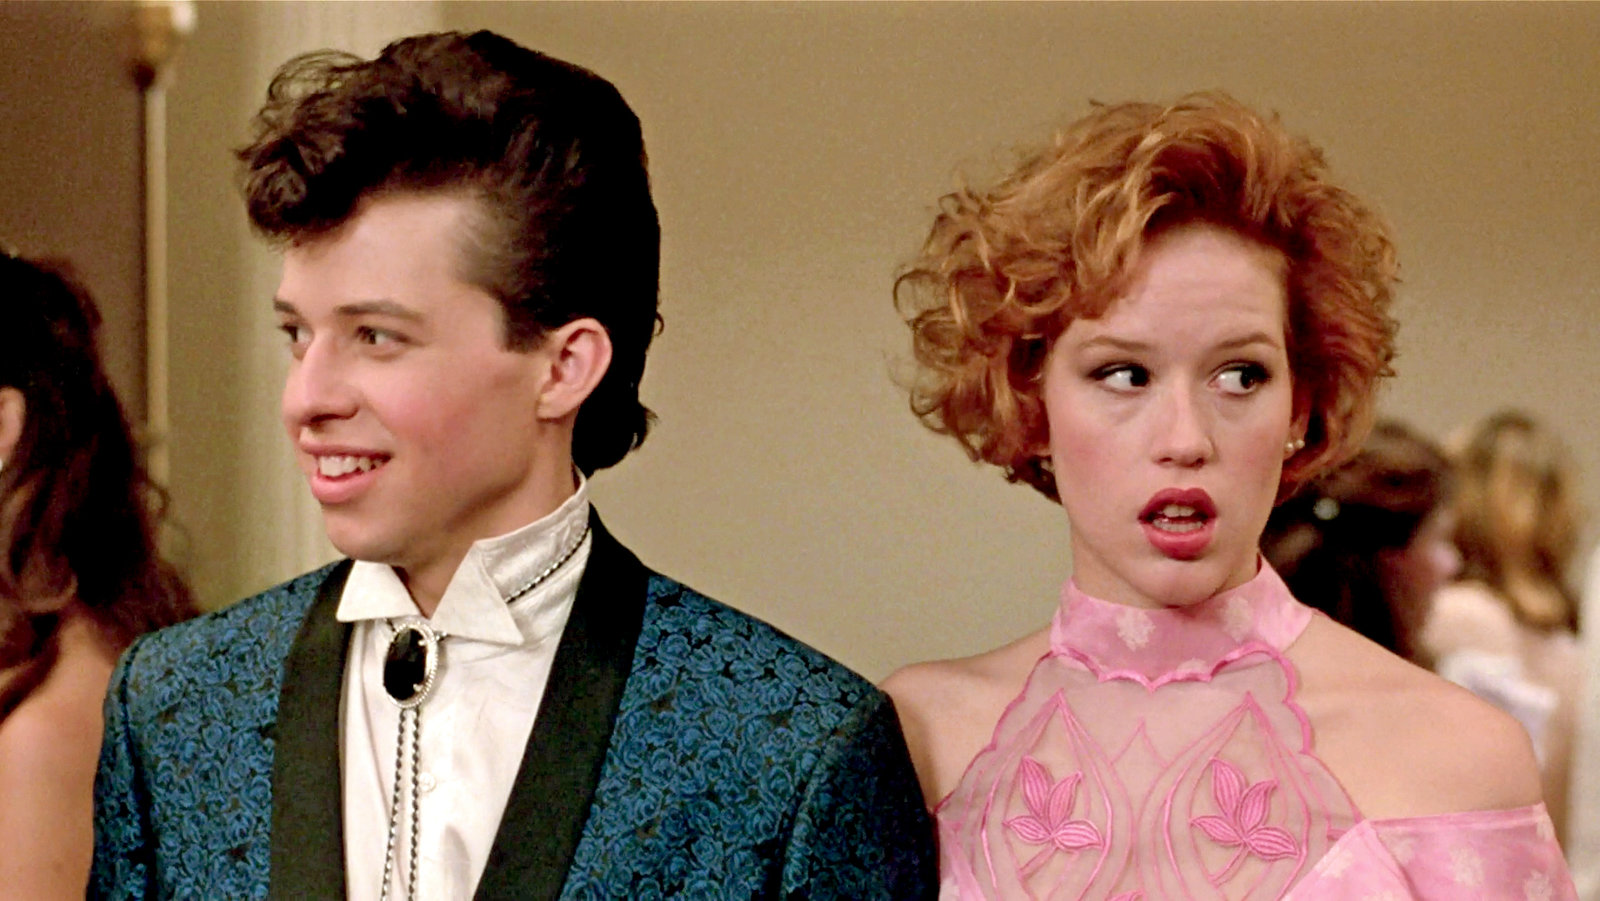 """Image of Duckie and Andy from """"Pretty in Pink"""" at prom"""